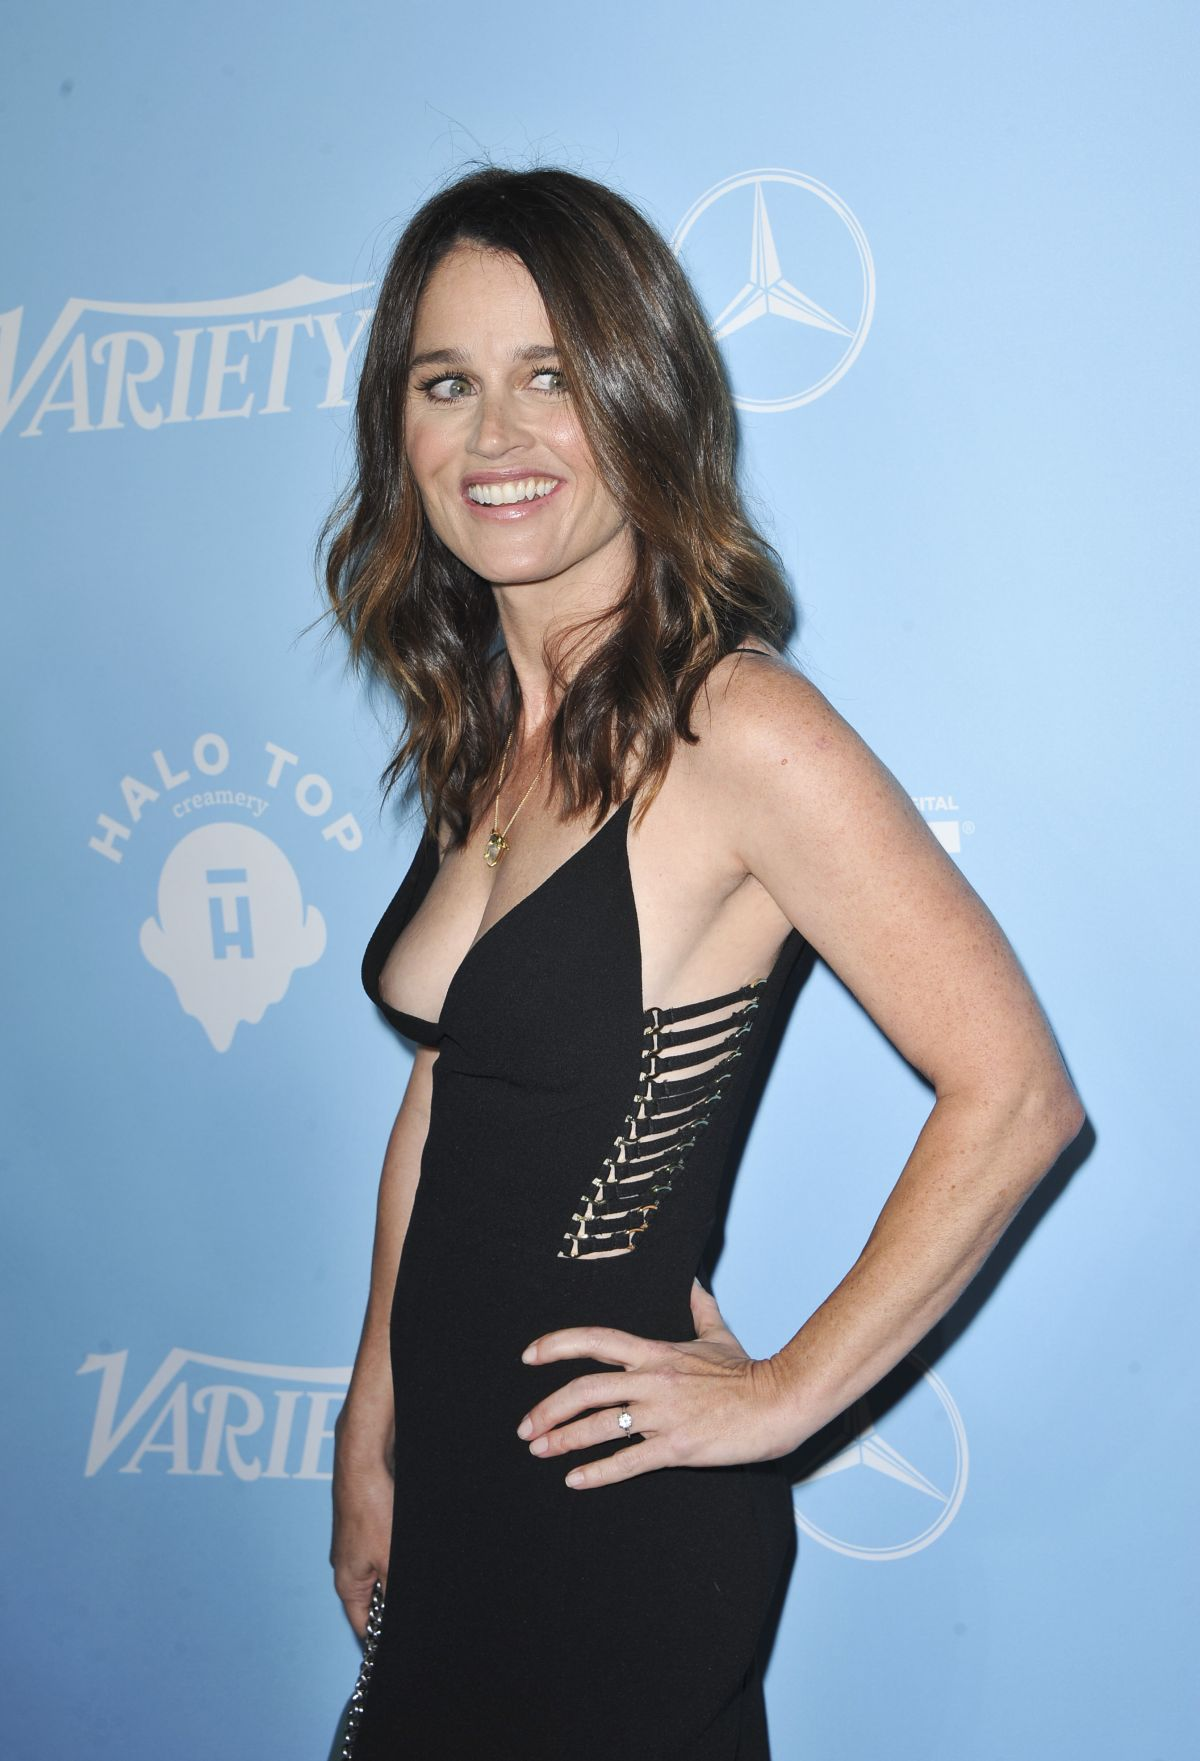 Pics Robin Tunney nudes (73 photo), Ass, Cleavage, Selfie, cameltoe 2015